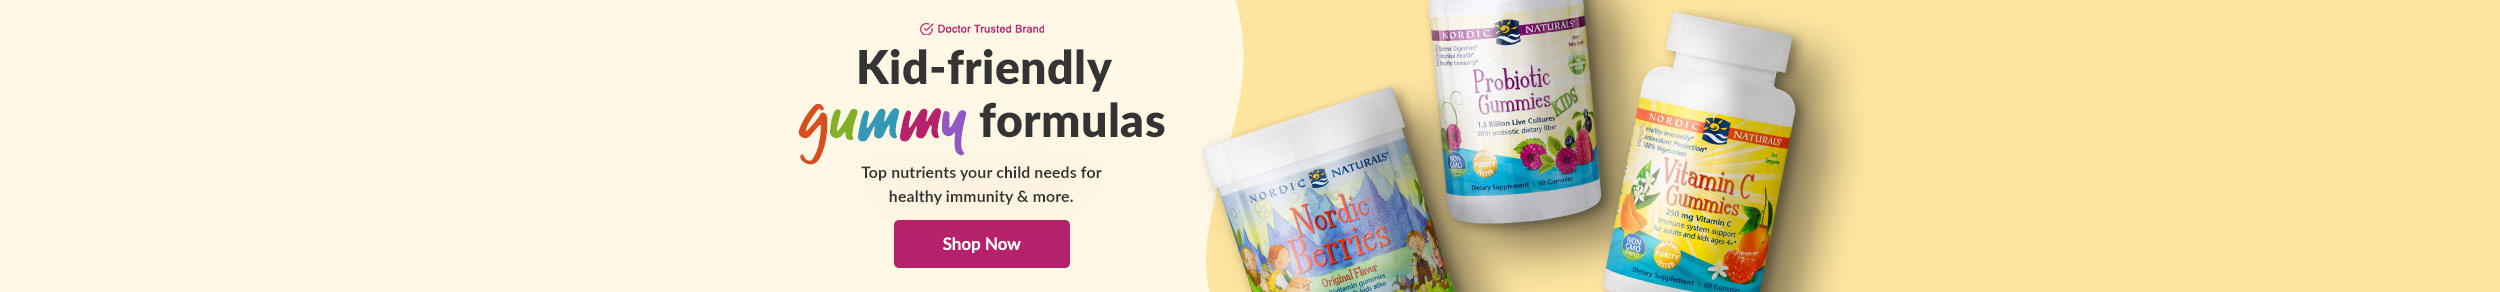 Doctor Trusted Brand: Kid-friendly gummy formulas by Nordic Naturals. Top nutrients your child needs for healthy immunity & more. Shop Now!